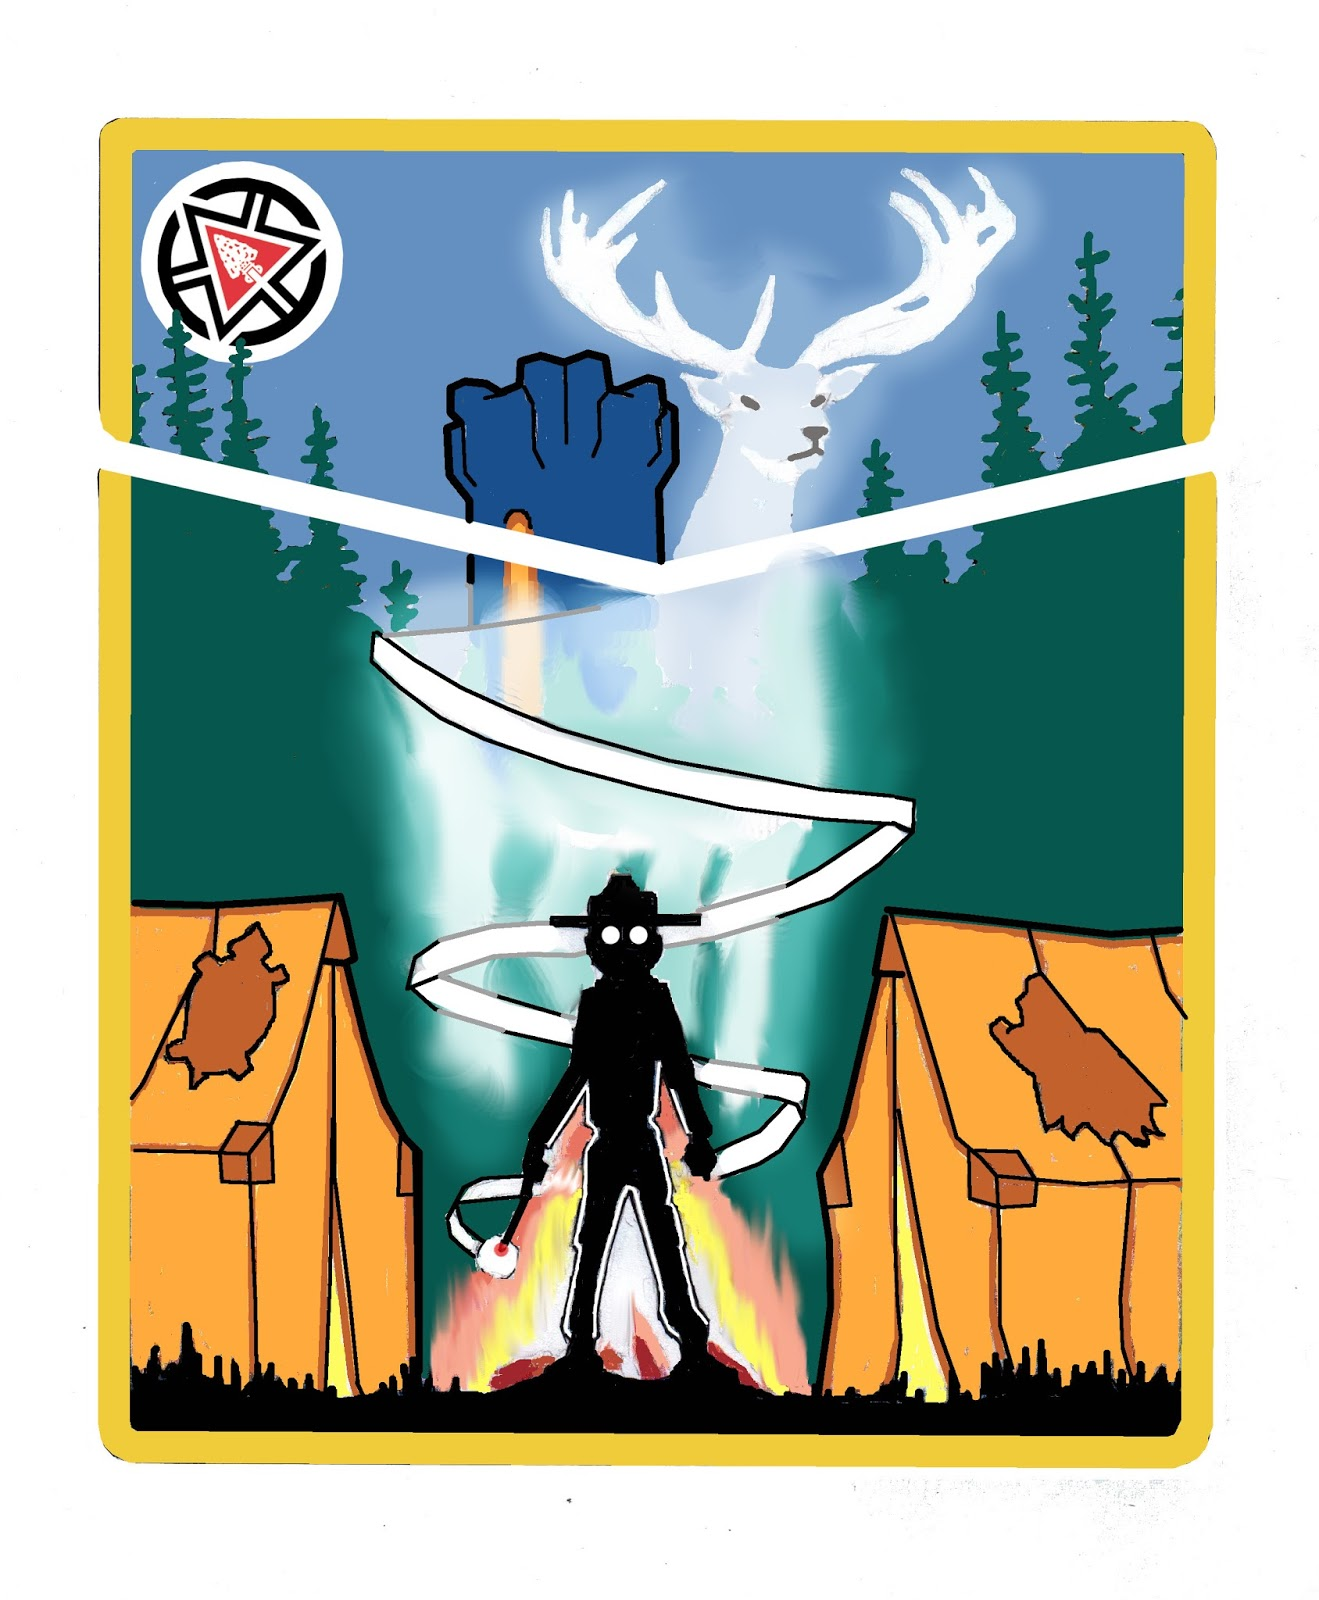 MP GRAPHICS: National Order of the Arrow Conference or (NOAC)